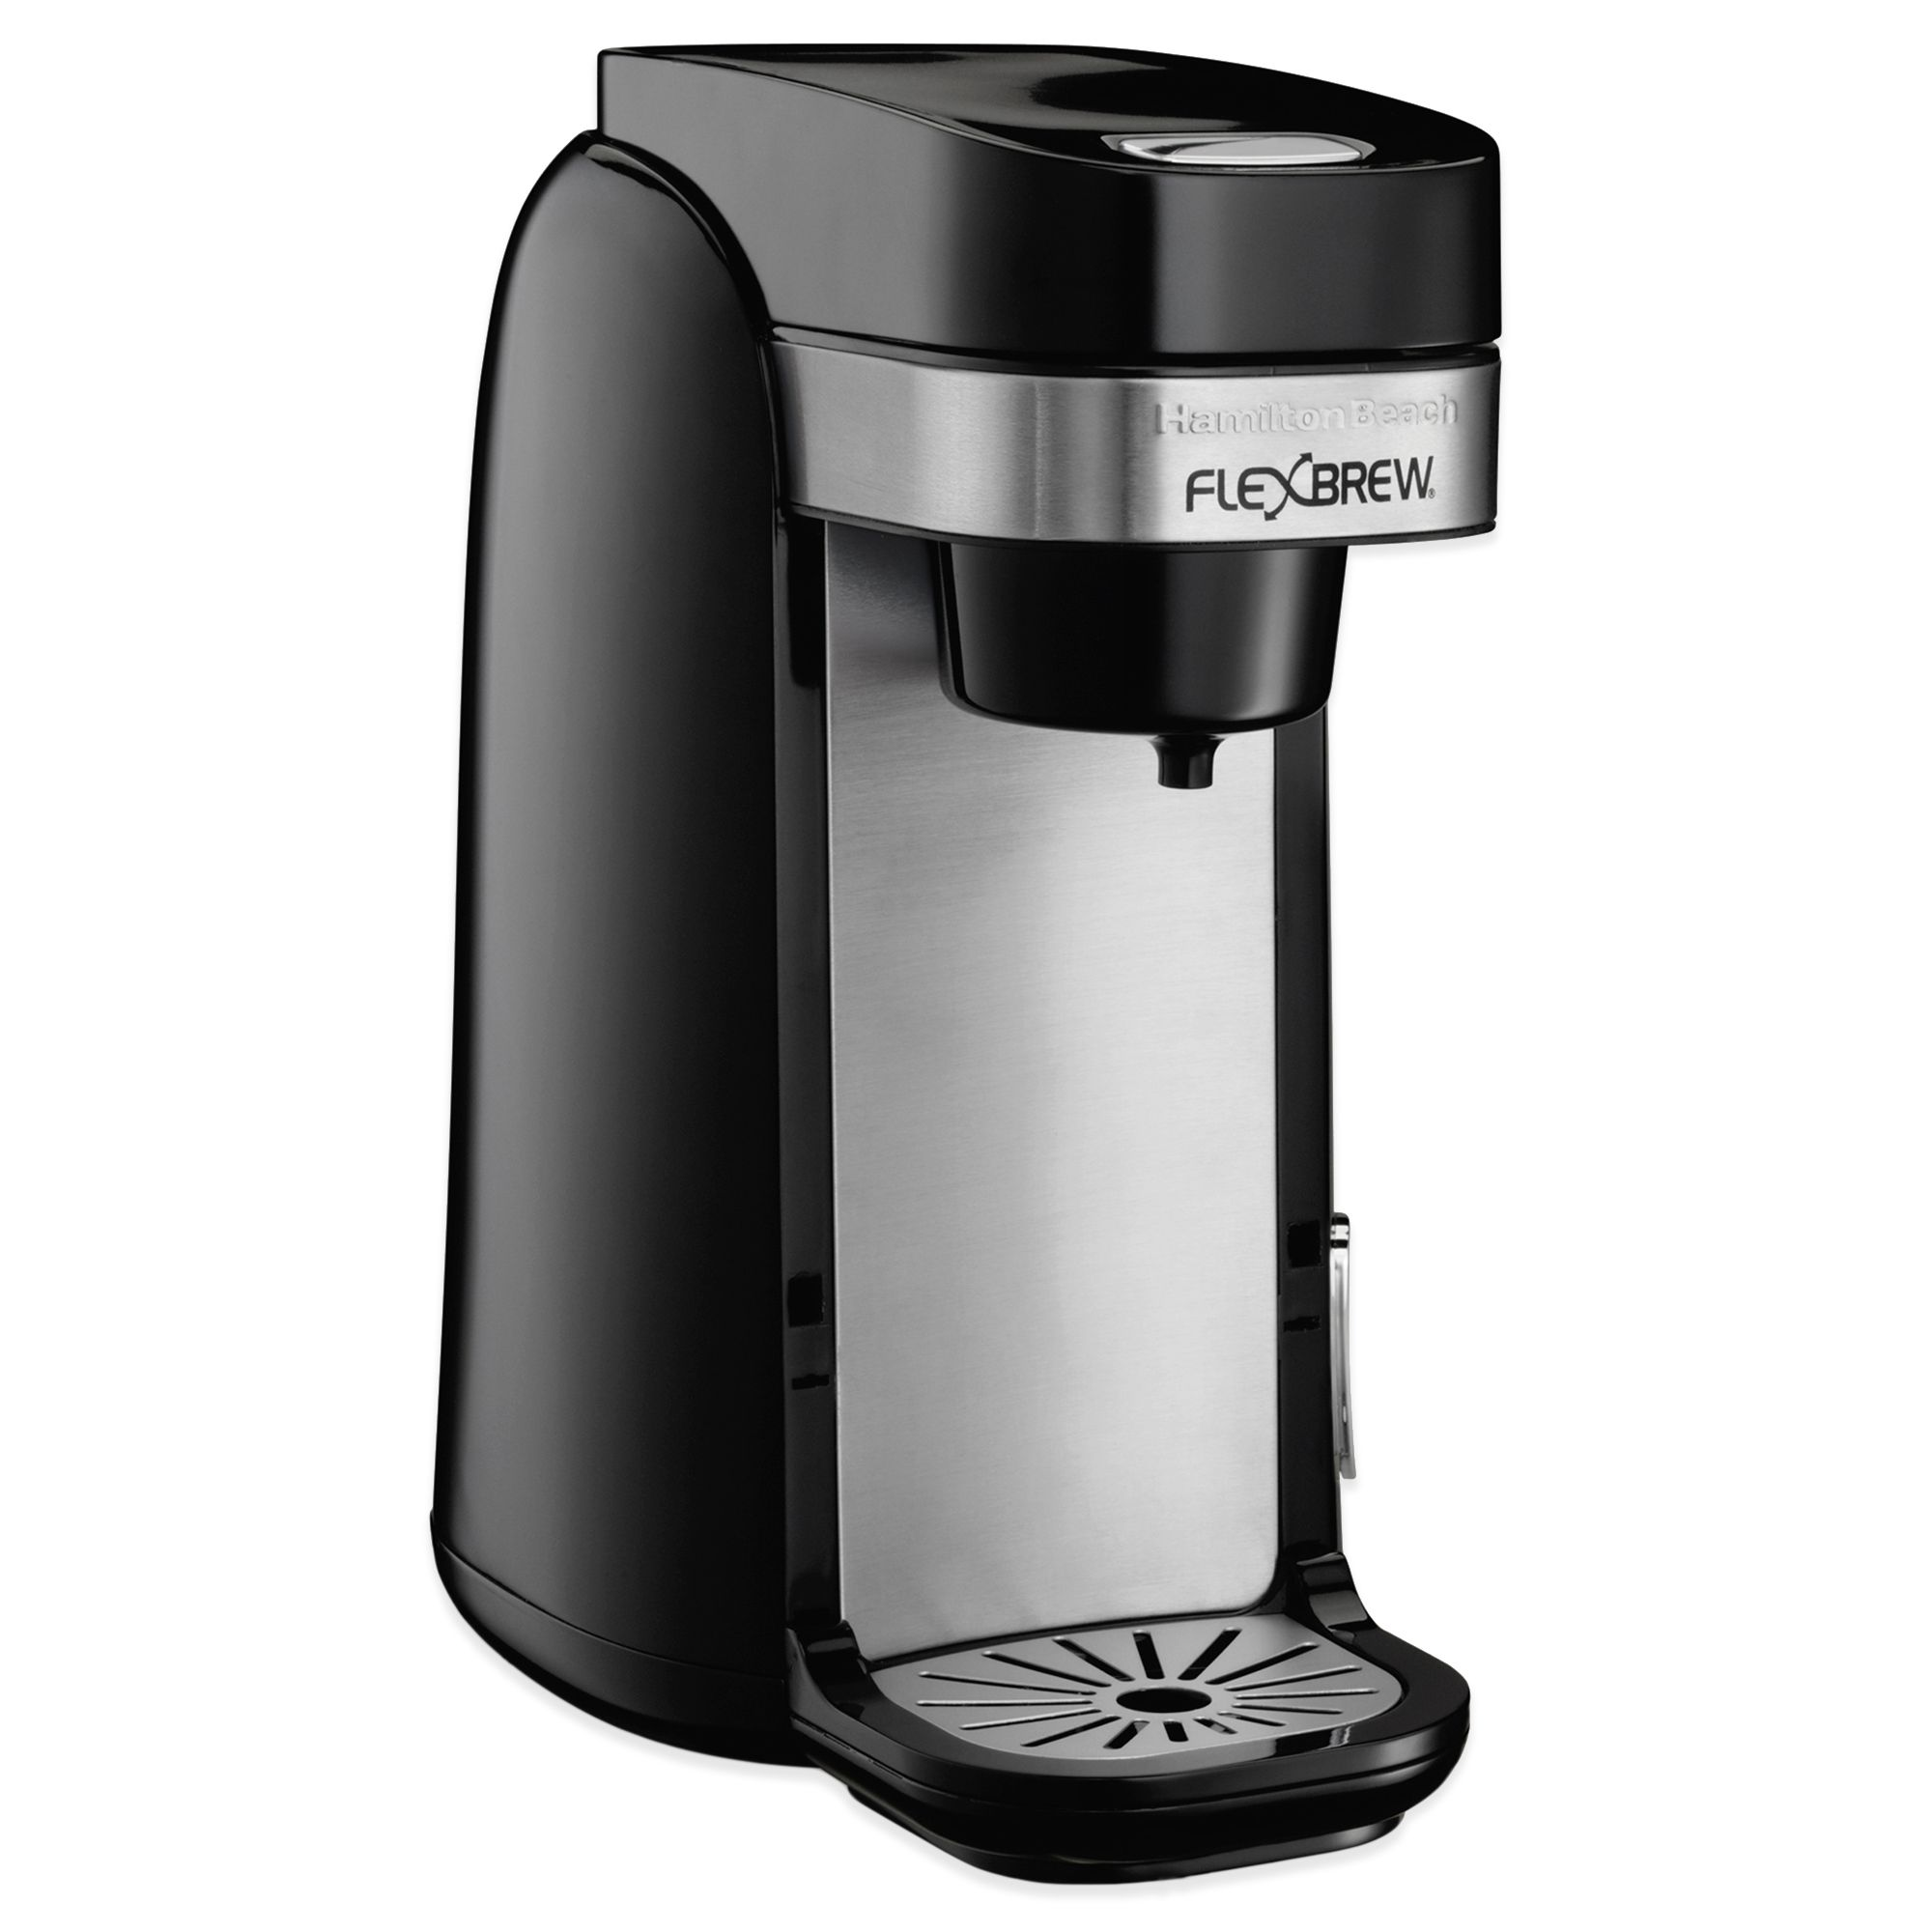 Hamilton Beach® FlexBrew® 49997R Single Serve Coffee Maker